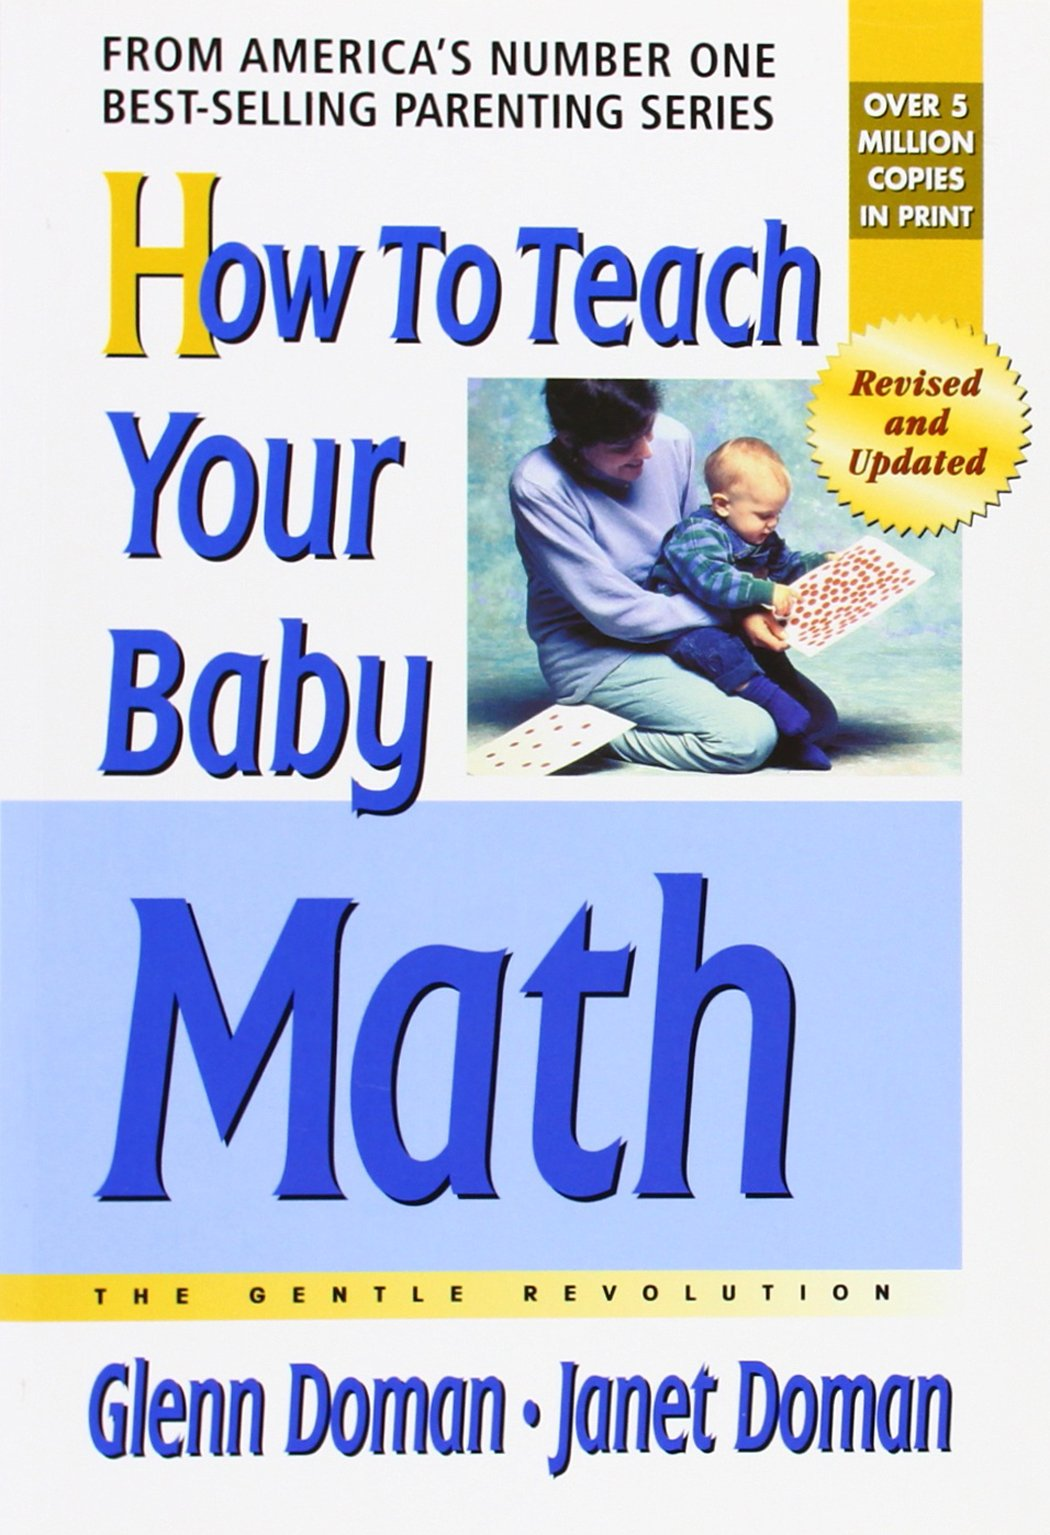 amazon how to teach your baby math the gentle revolution glenn